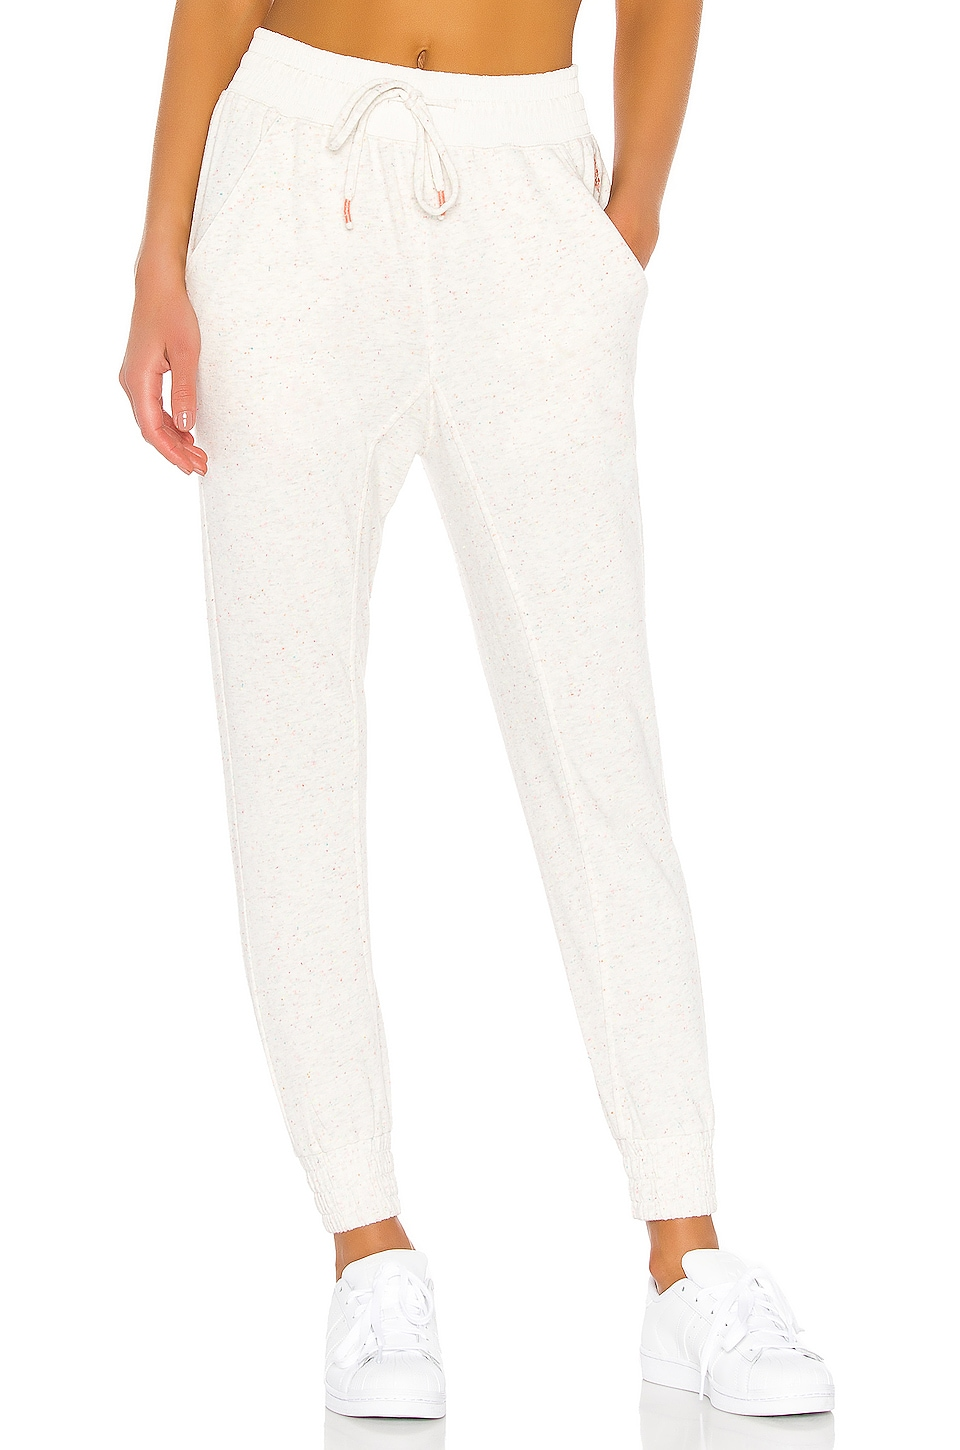 Free People X FP Movement Kick It Up Jogger in Ivory